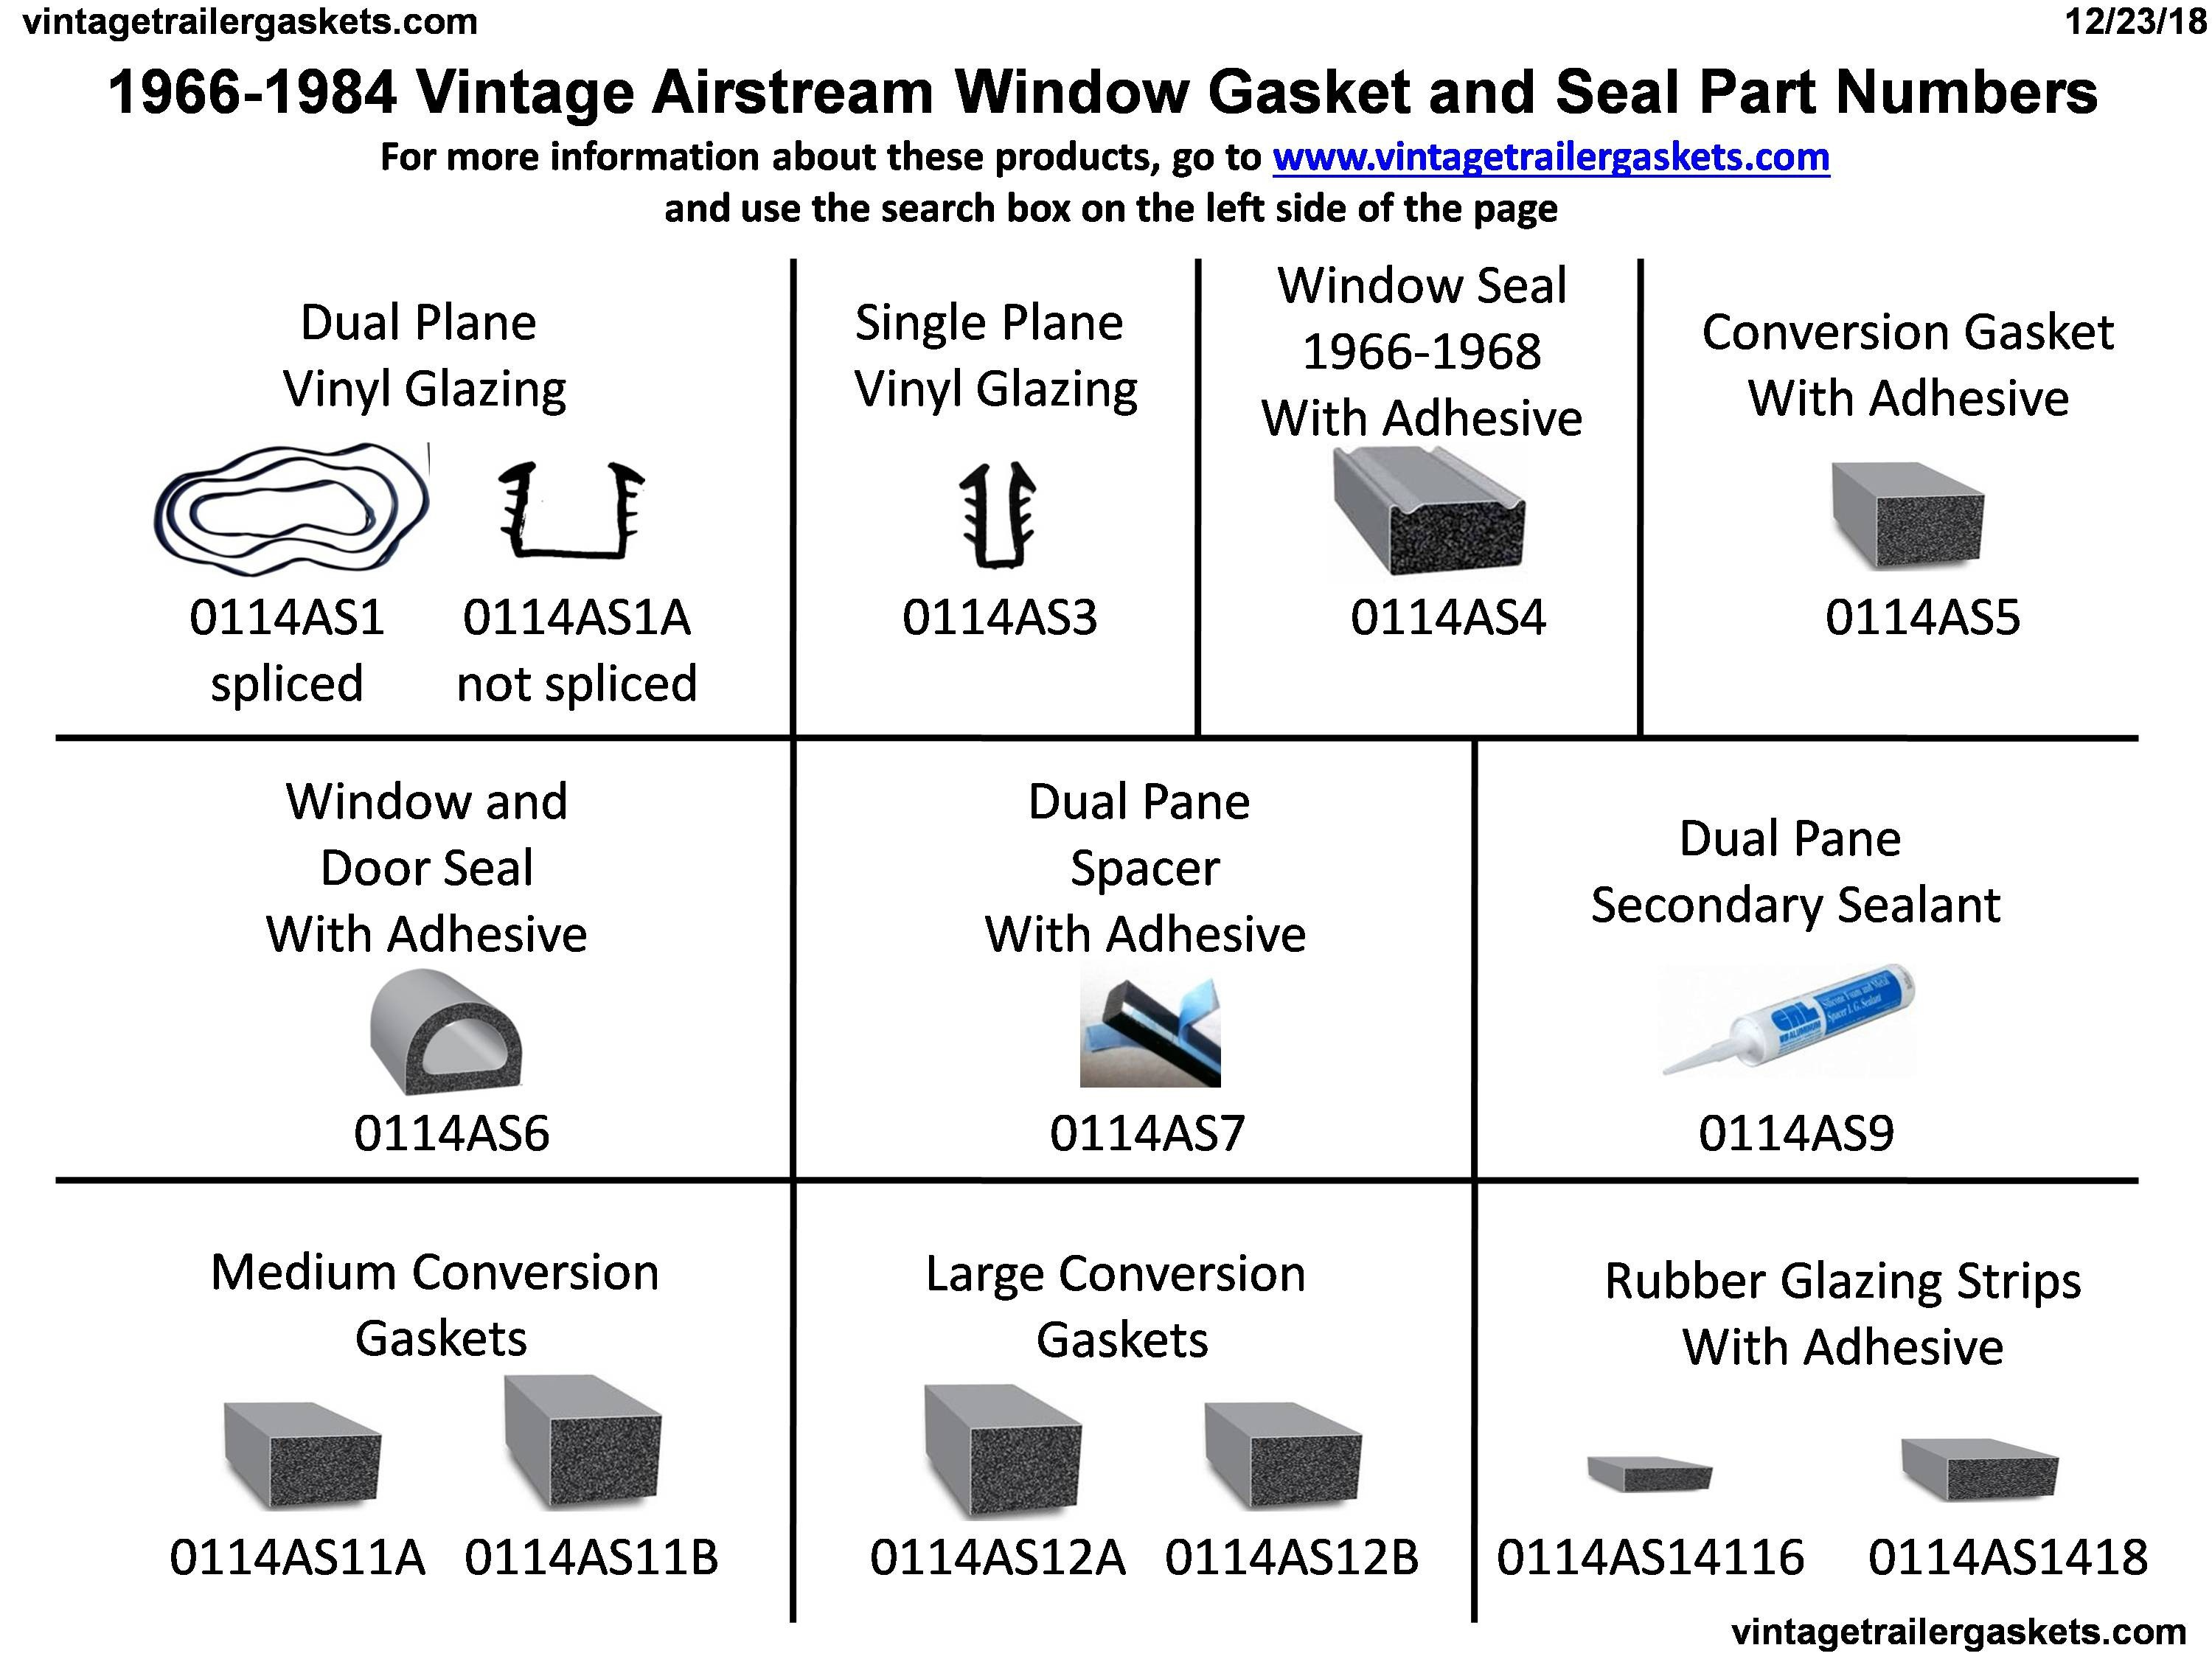 1966 to 1984 Airstream Window Gaskets and Seals